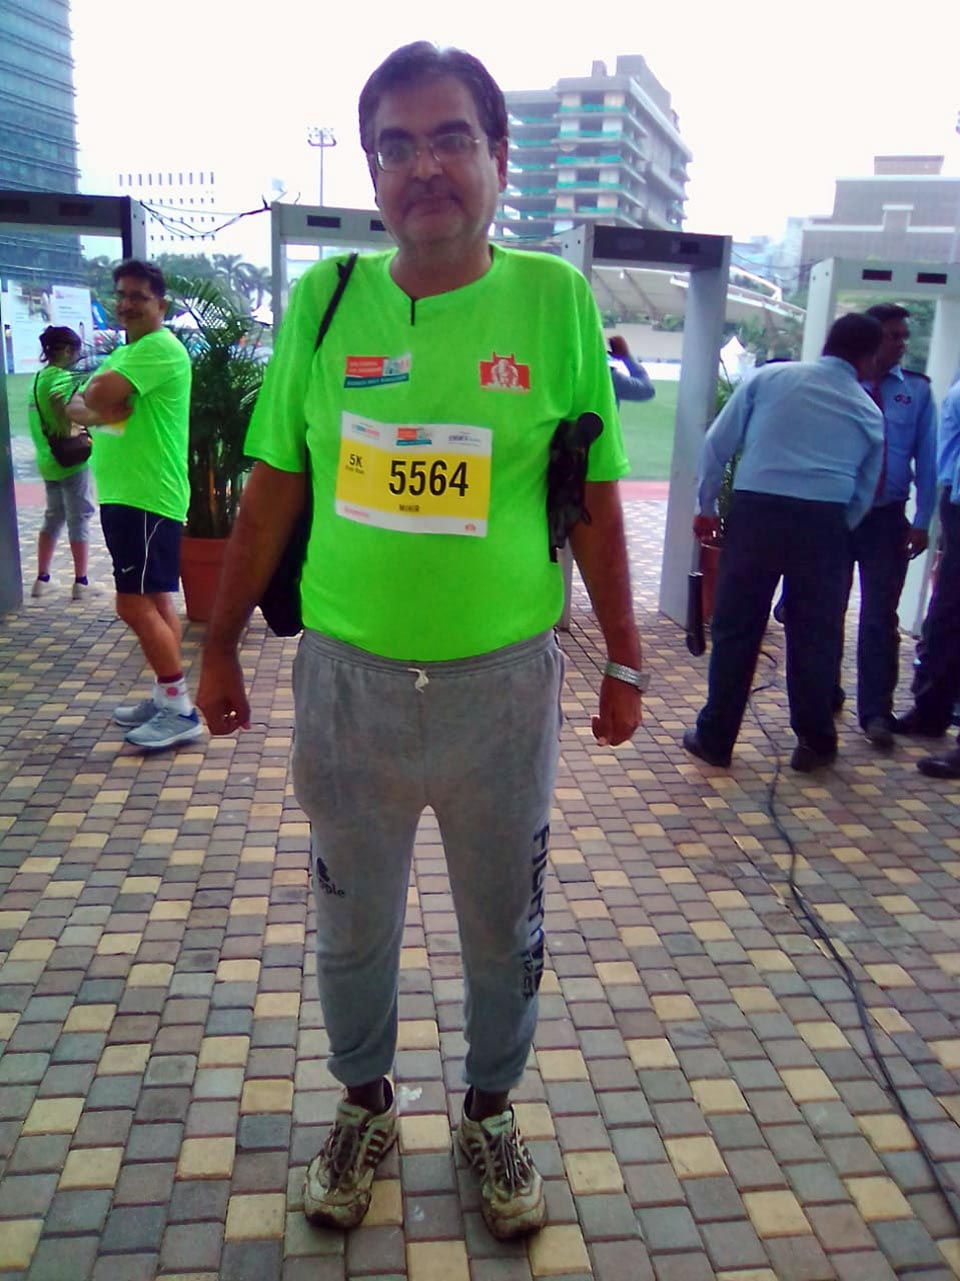 Aramco Brat, Mihir Manek, at the IDBI Federal Life Insurance Mumbai half-marathon on August 25, 2019.